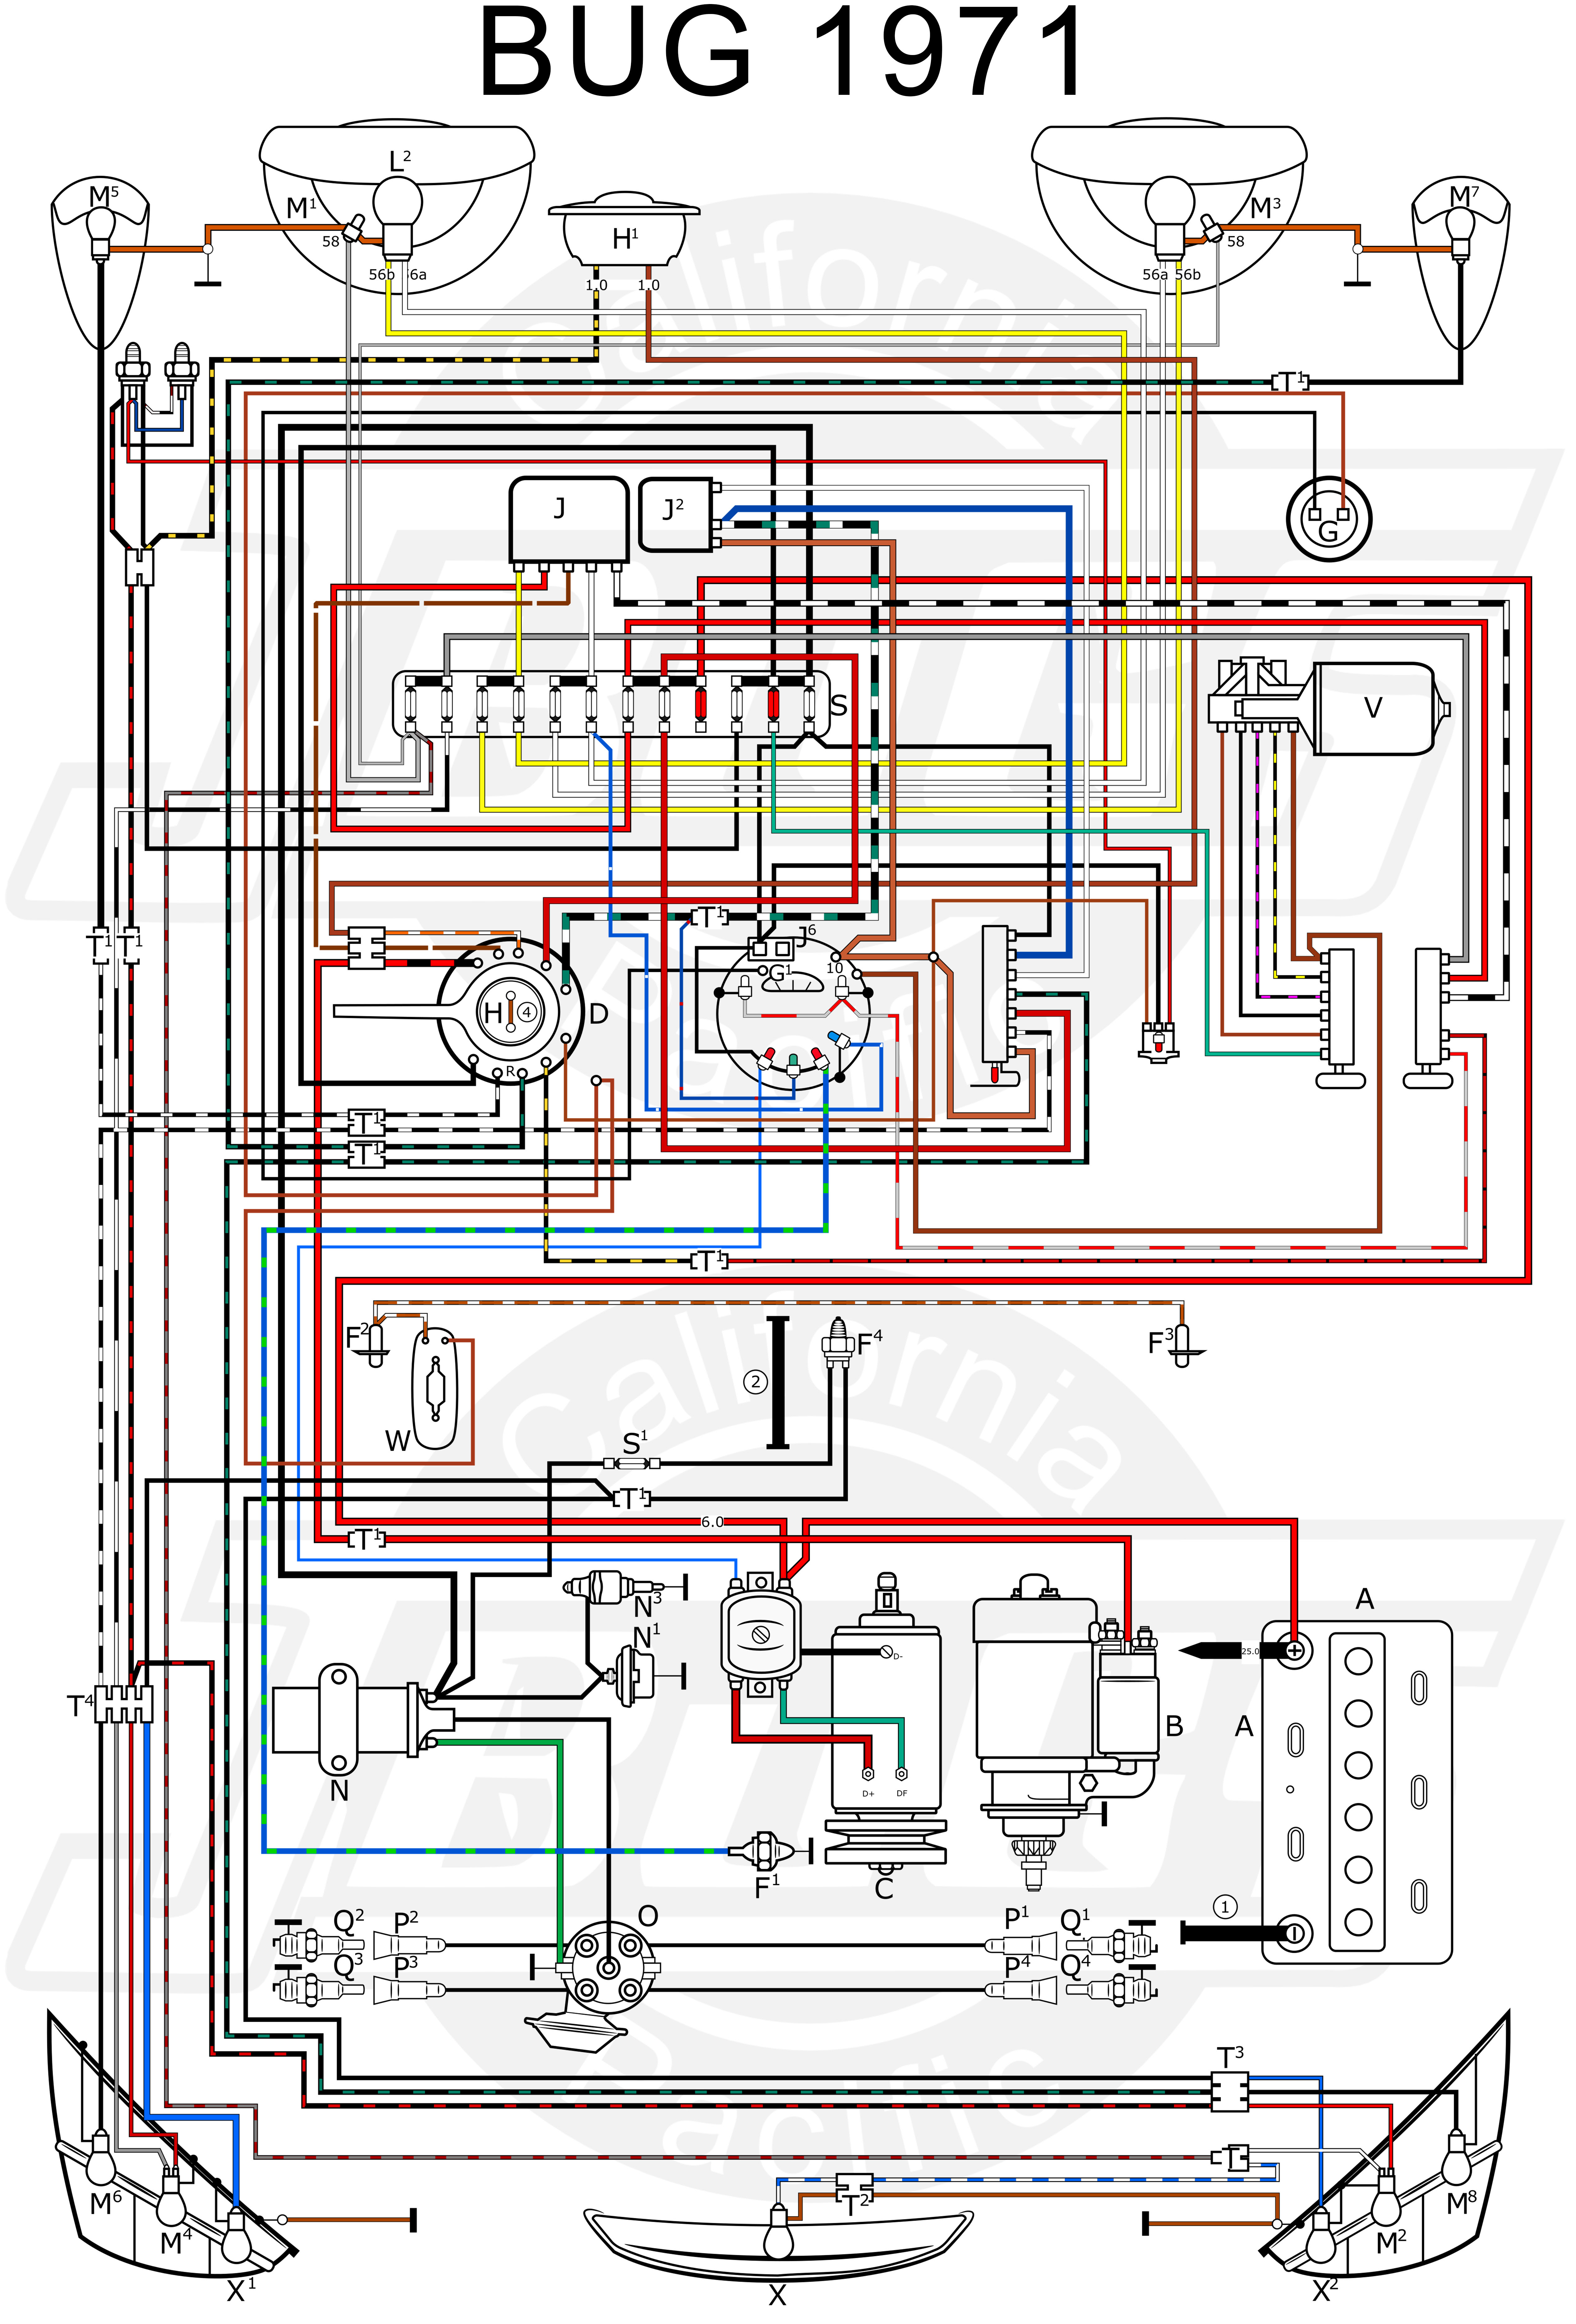 Diagram Basic Light Wiring Diagrams 71 Malibu Full Version Hd Quality 71 Malibu Diagramsreza Csarcheometria It